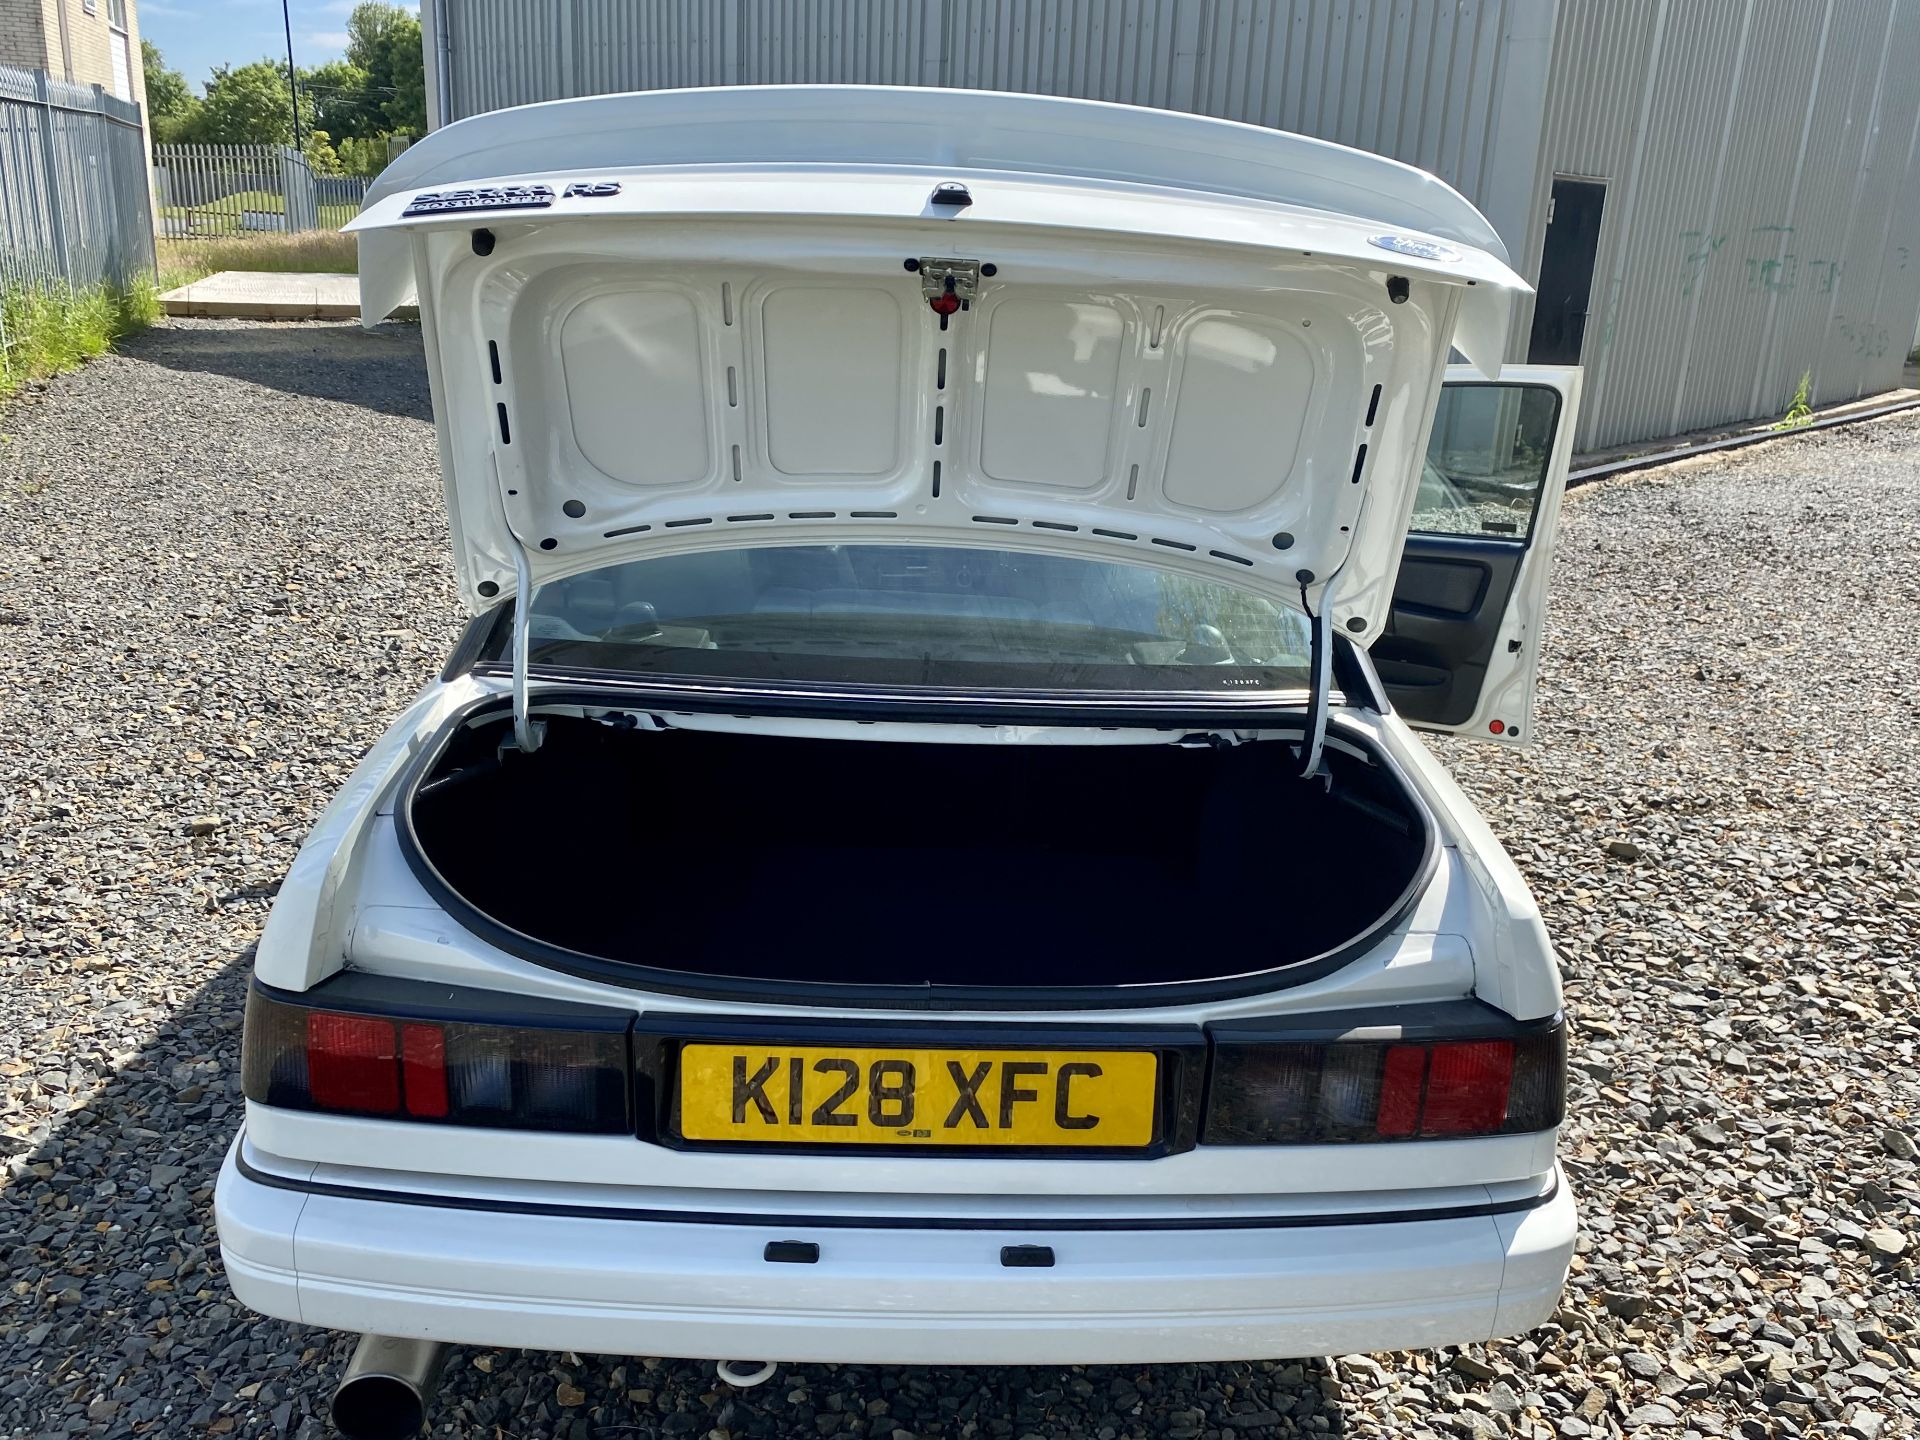 Ford Sierra Sapphire Cosworth 4x4 - Image 47 of 55